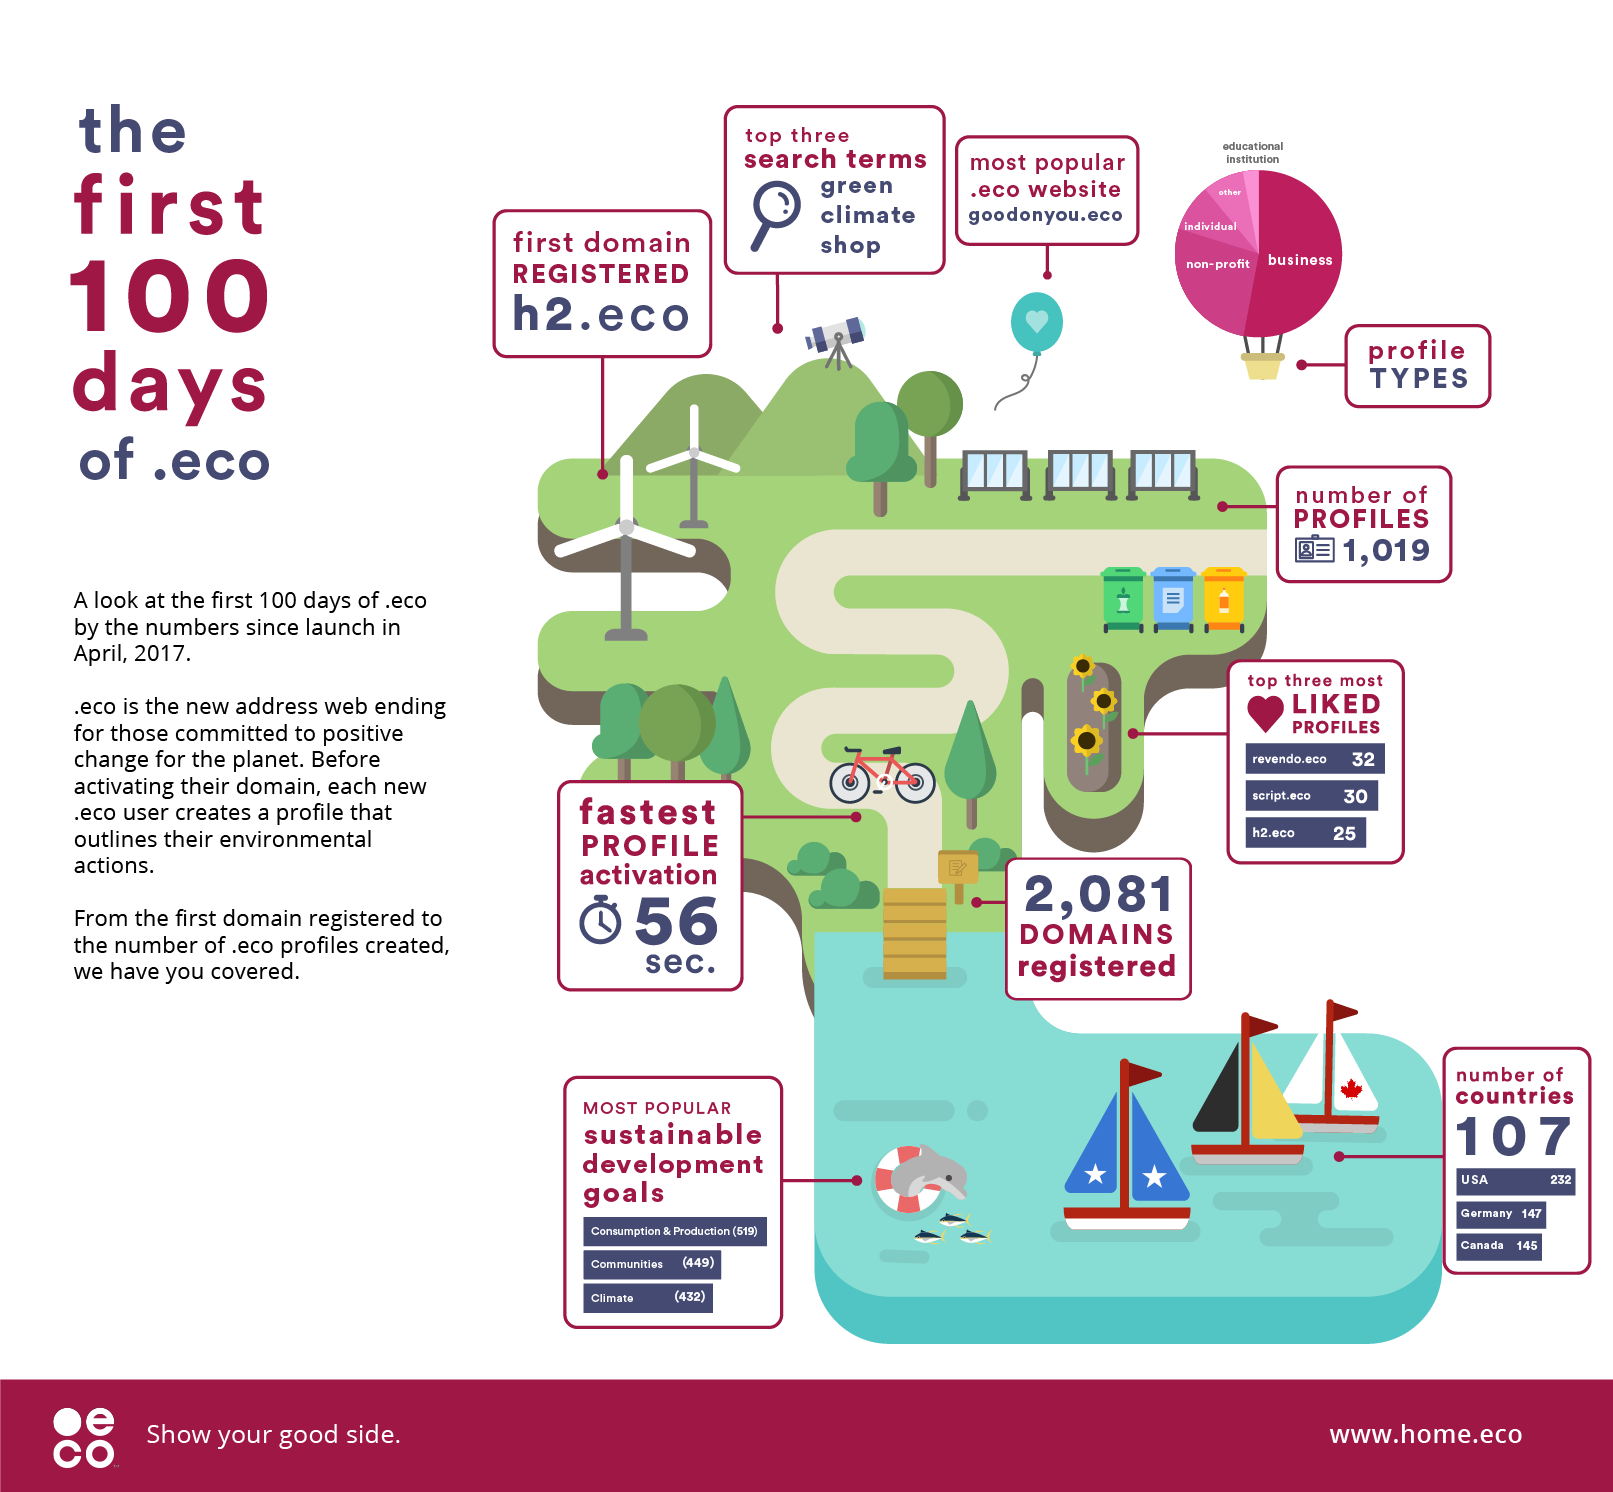 First 100 days of .eco infographic